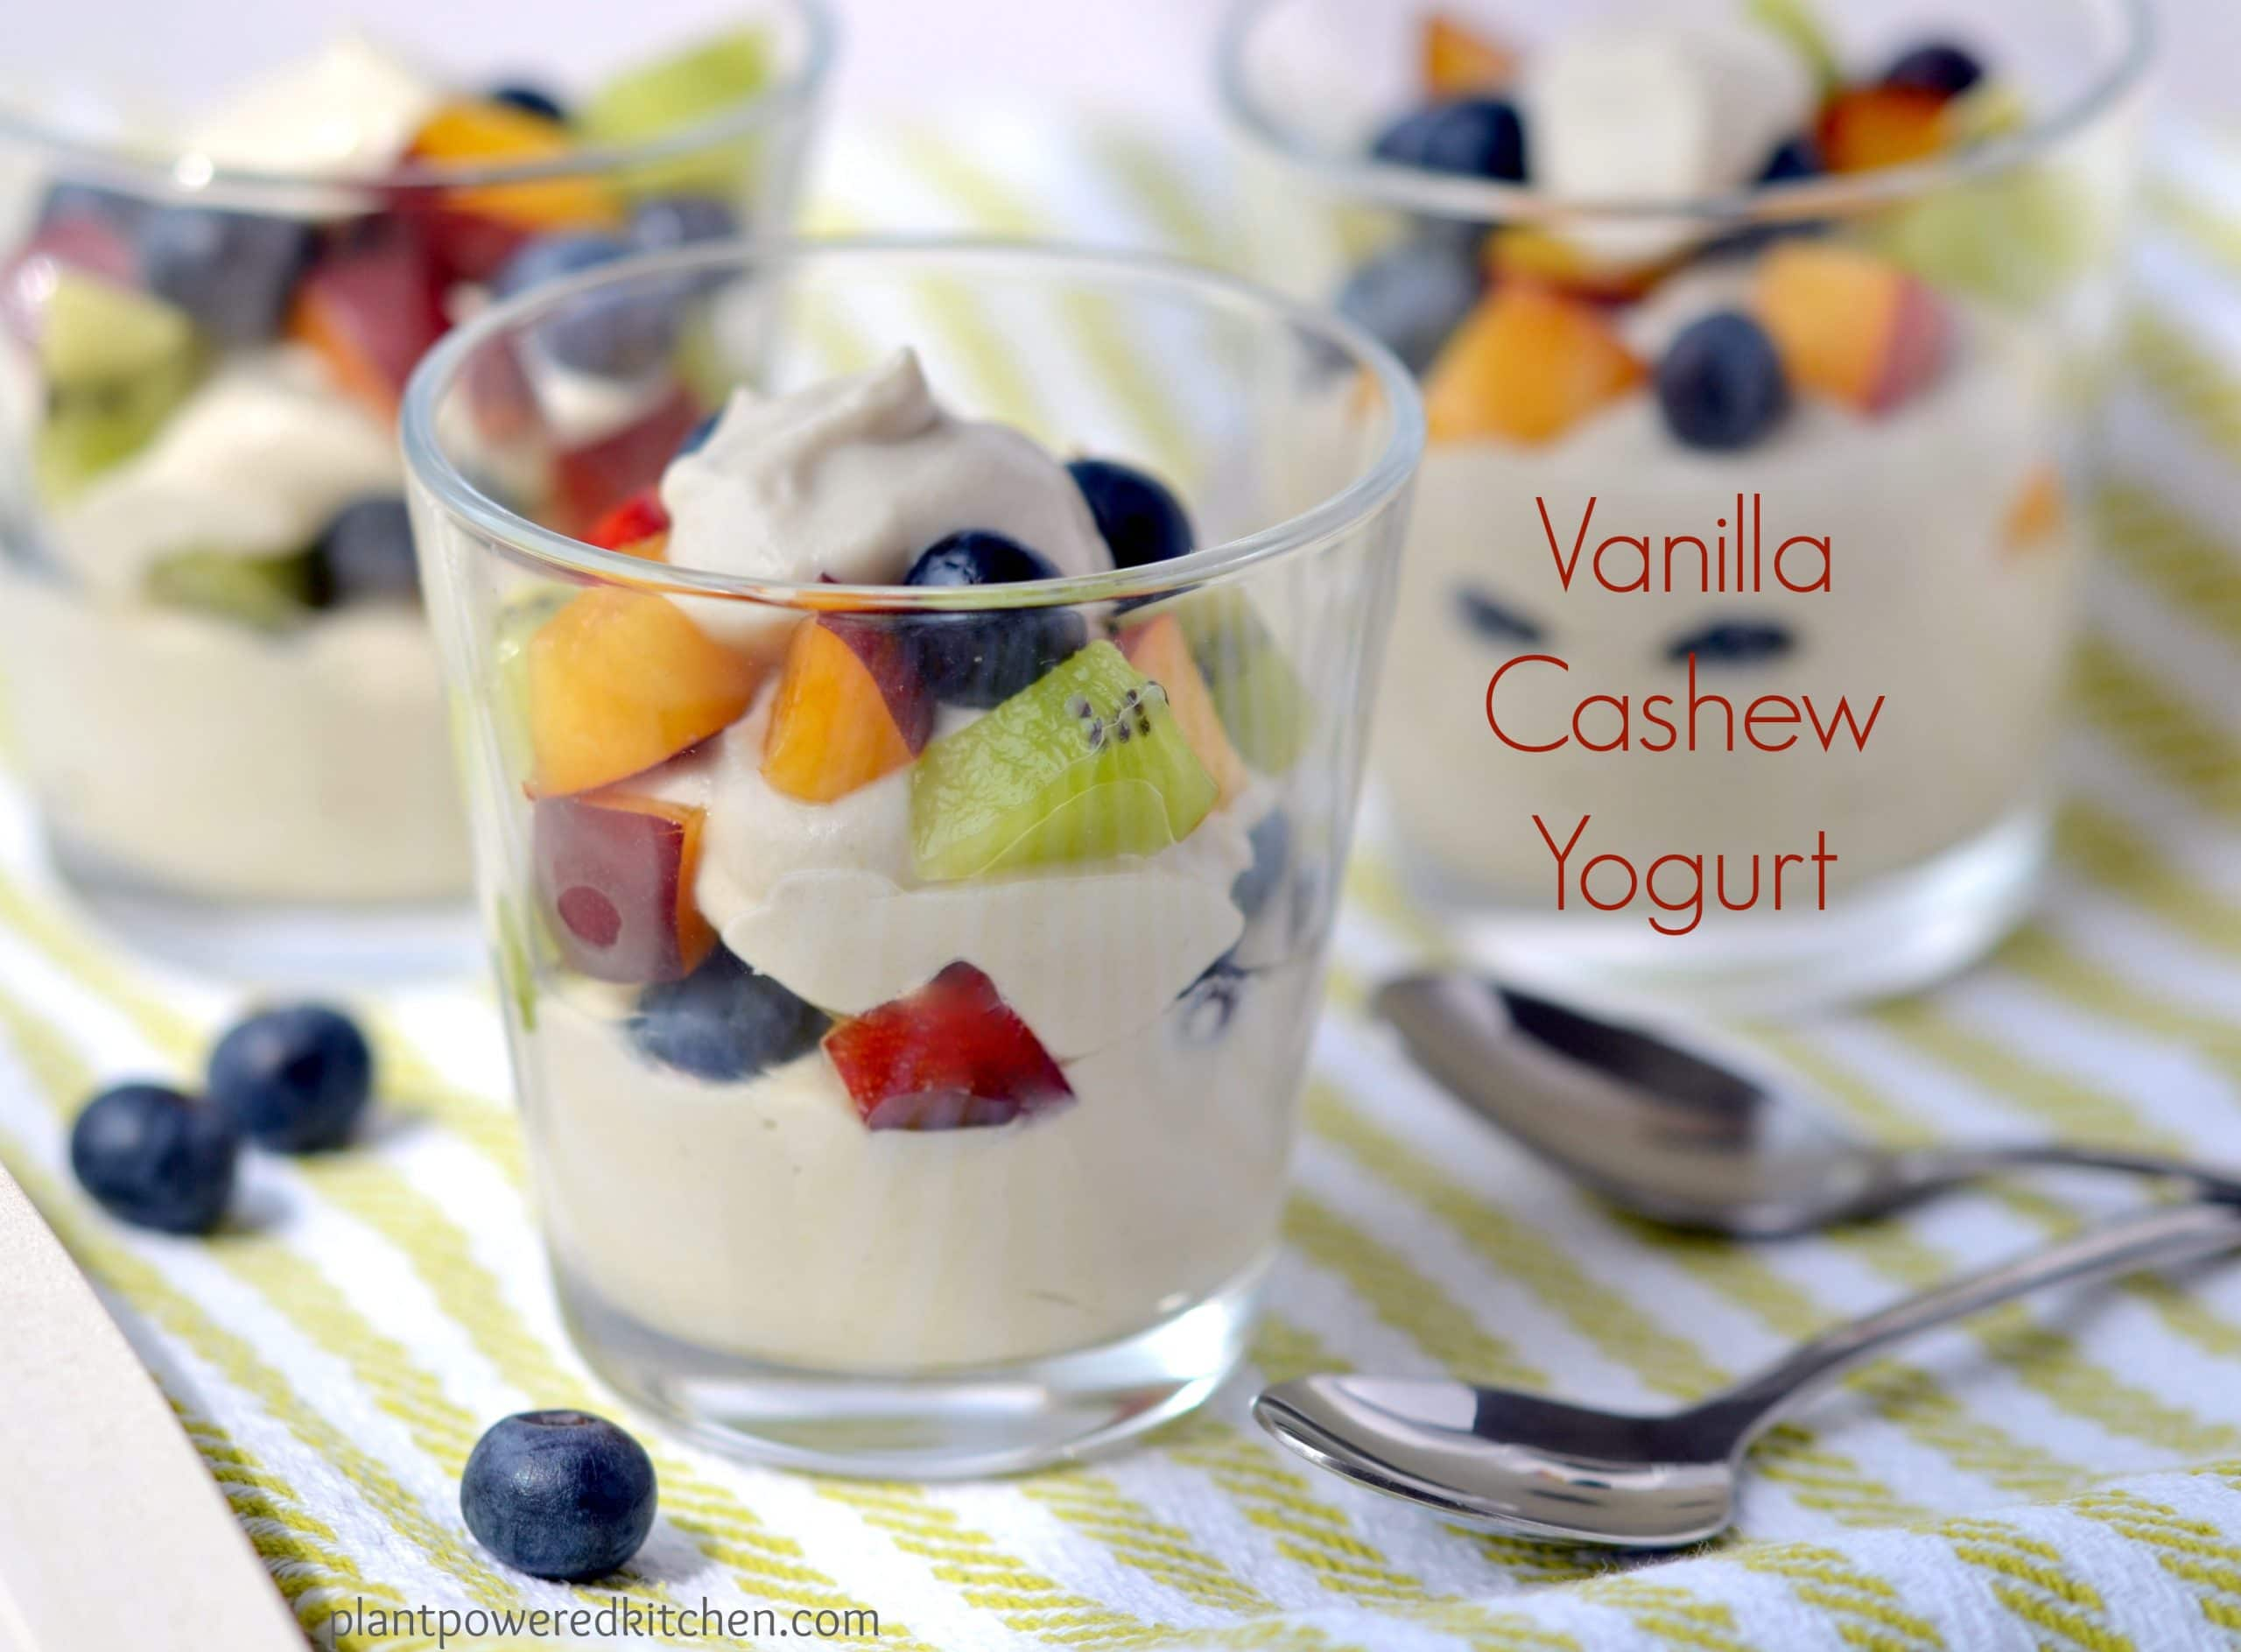 Vanilla Cashew Yogurt - from Dreena Burton, plant-powered kitchen - #vegan #soyfree #glutenfree #dairyfree